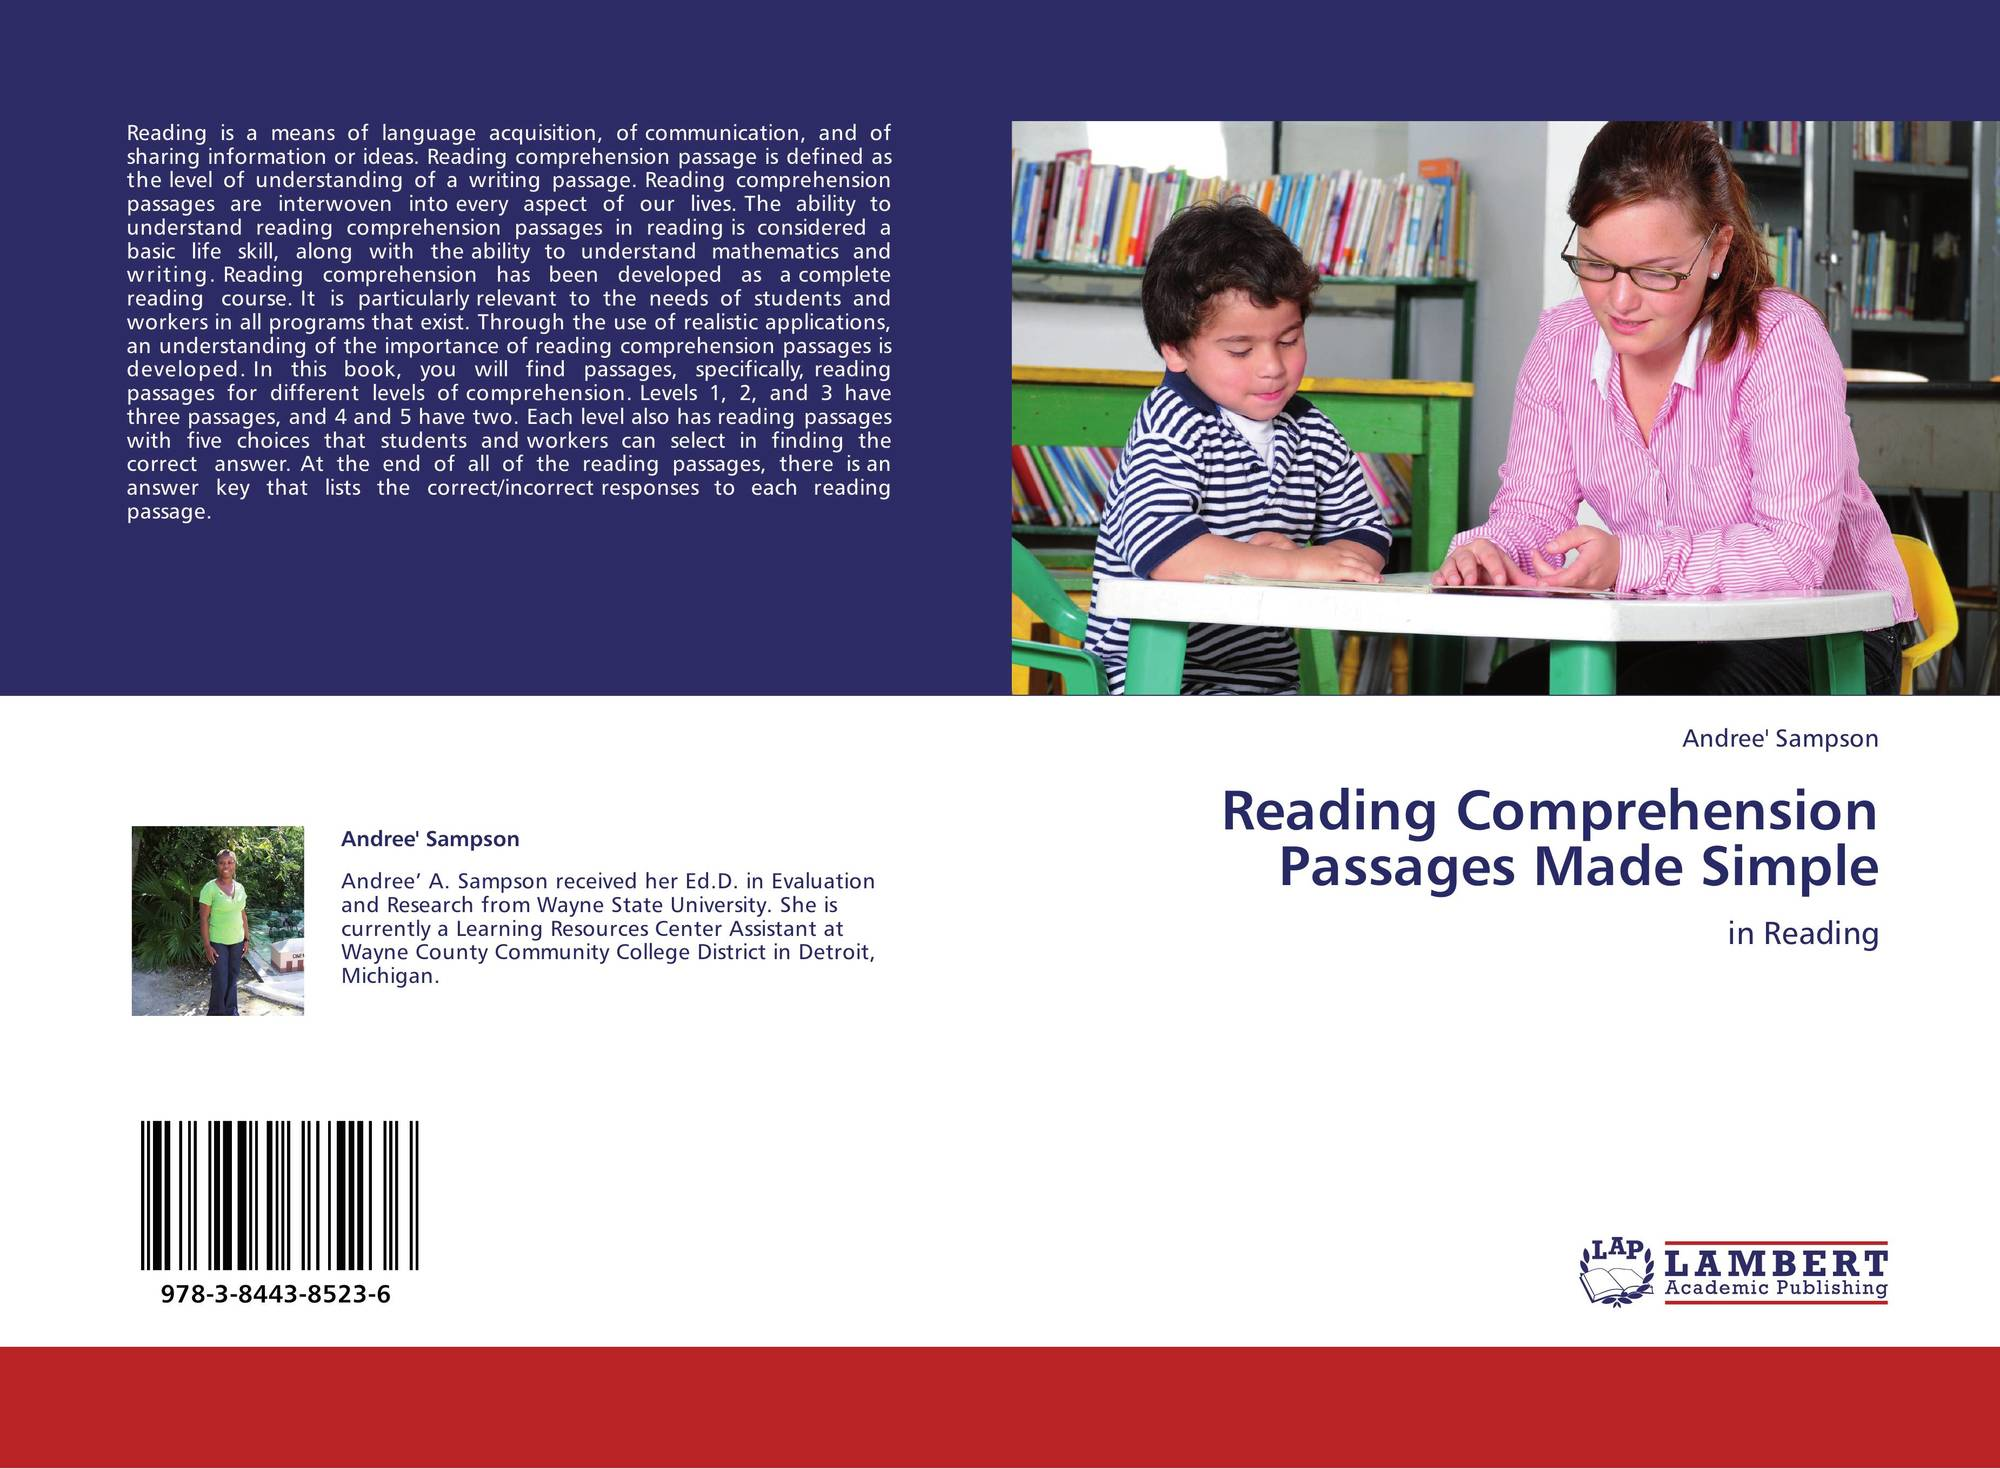 - Reading Comprehension Passages Made Simple, 978-3-8443-8523-6